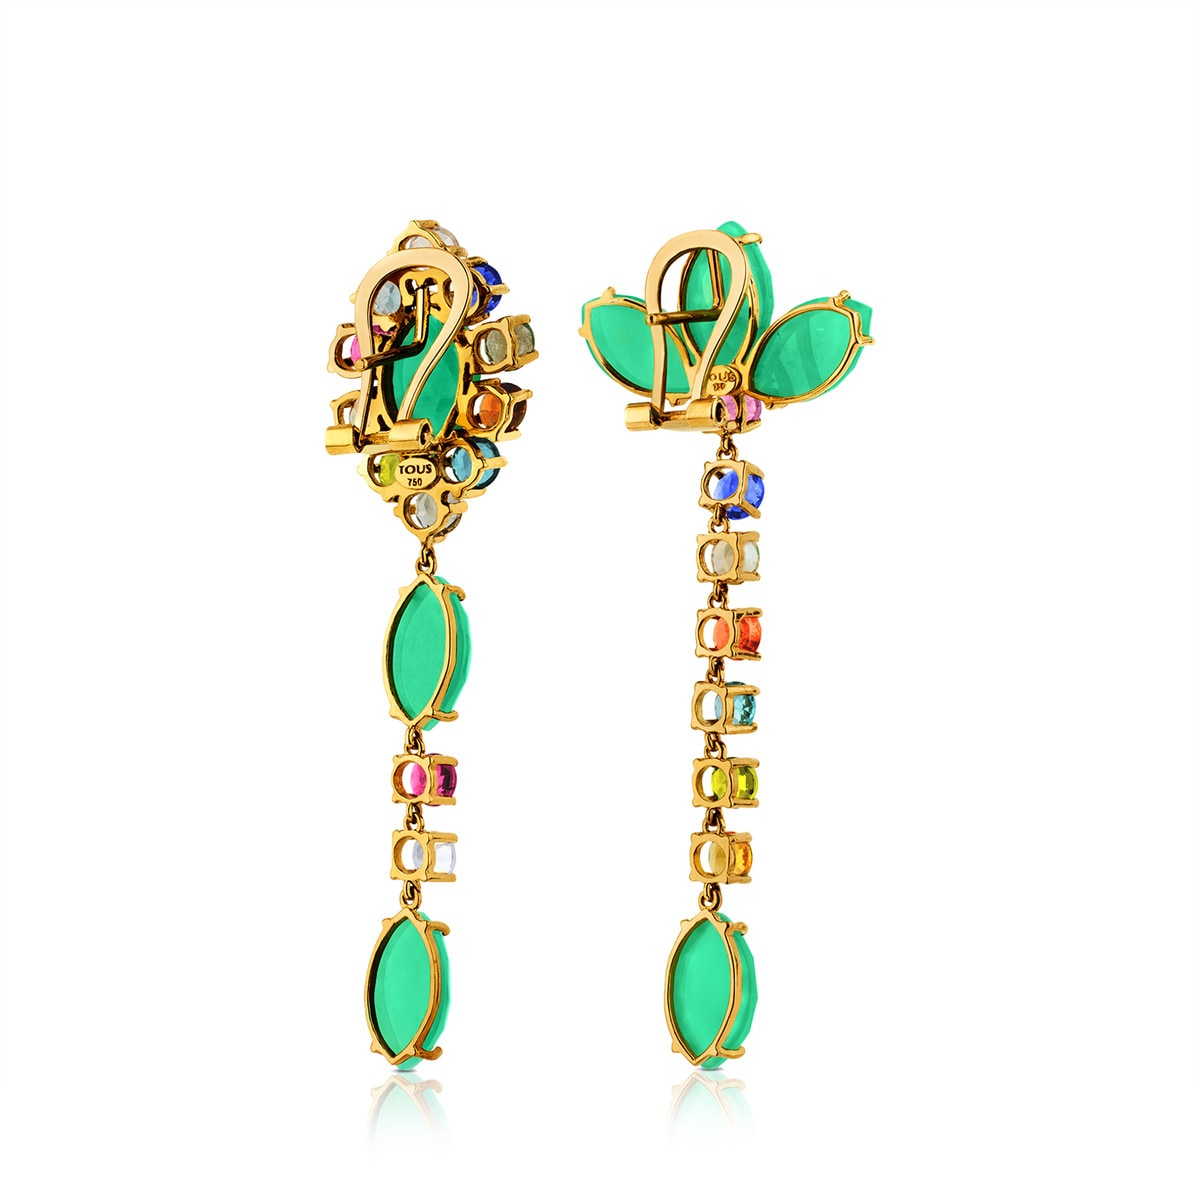 Boucles d'oreilles Beach en Or